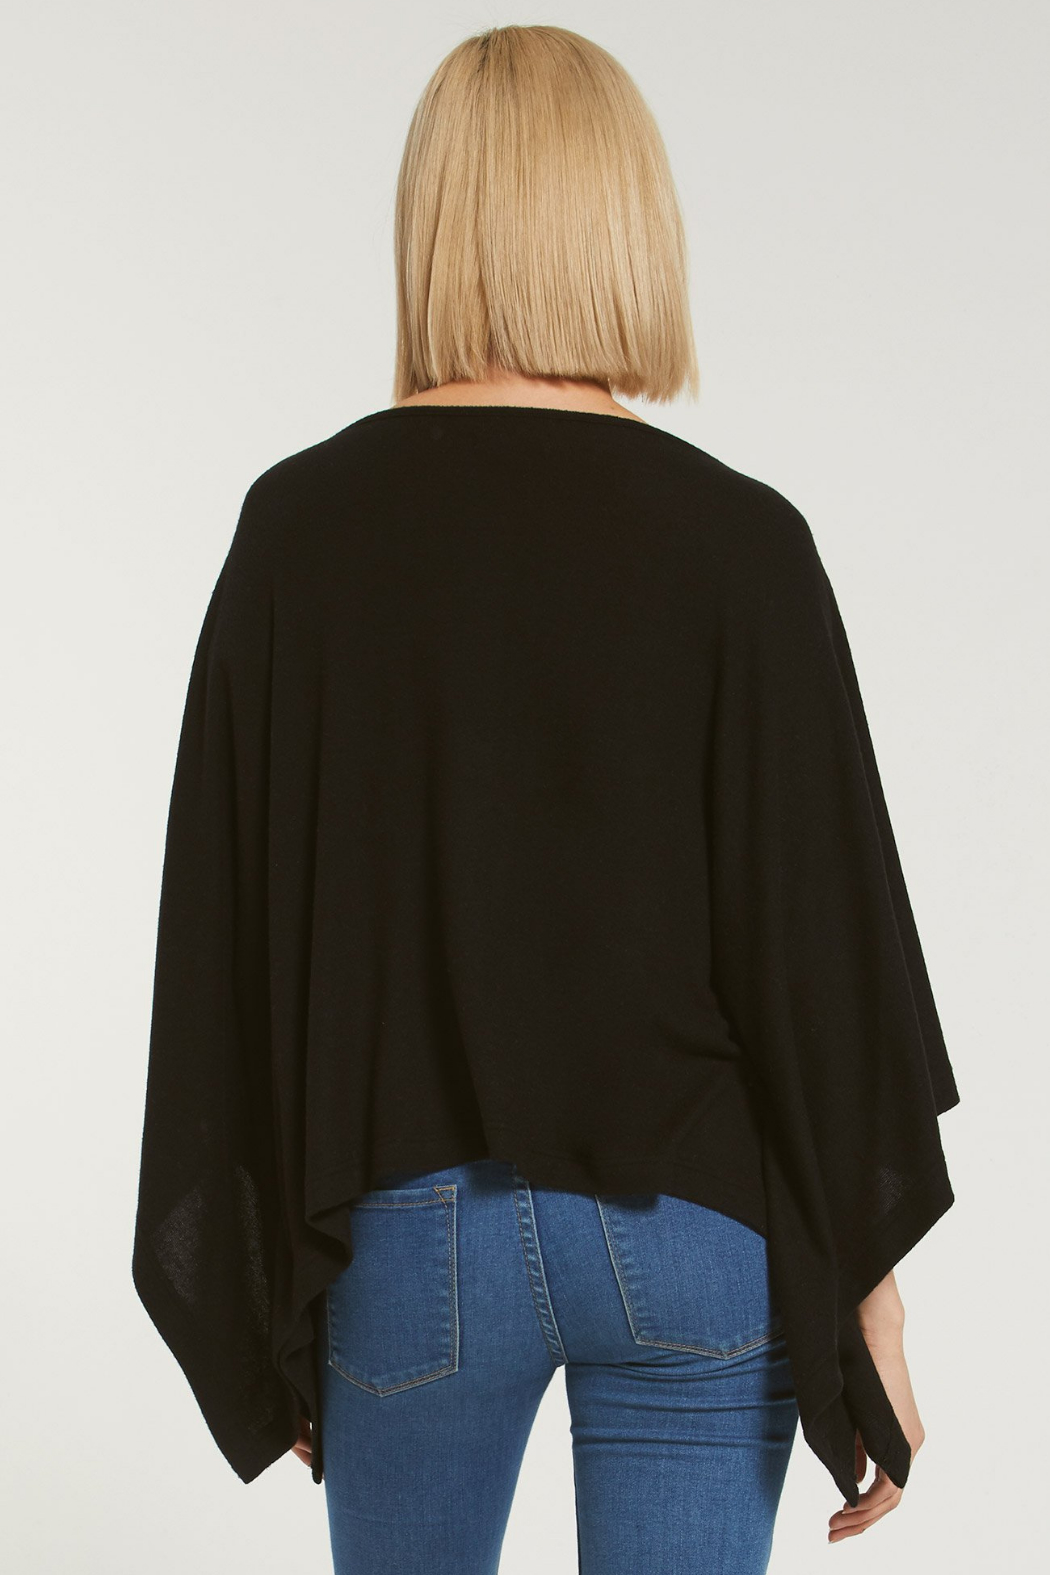 z supply Ruby Marled Poncho - Back Cropped Image